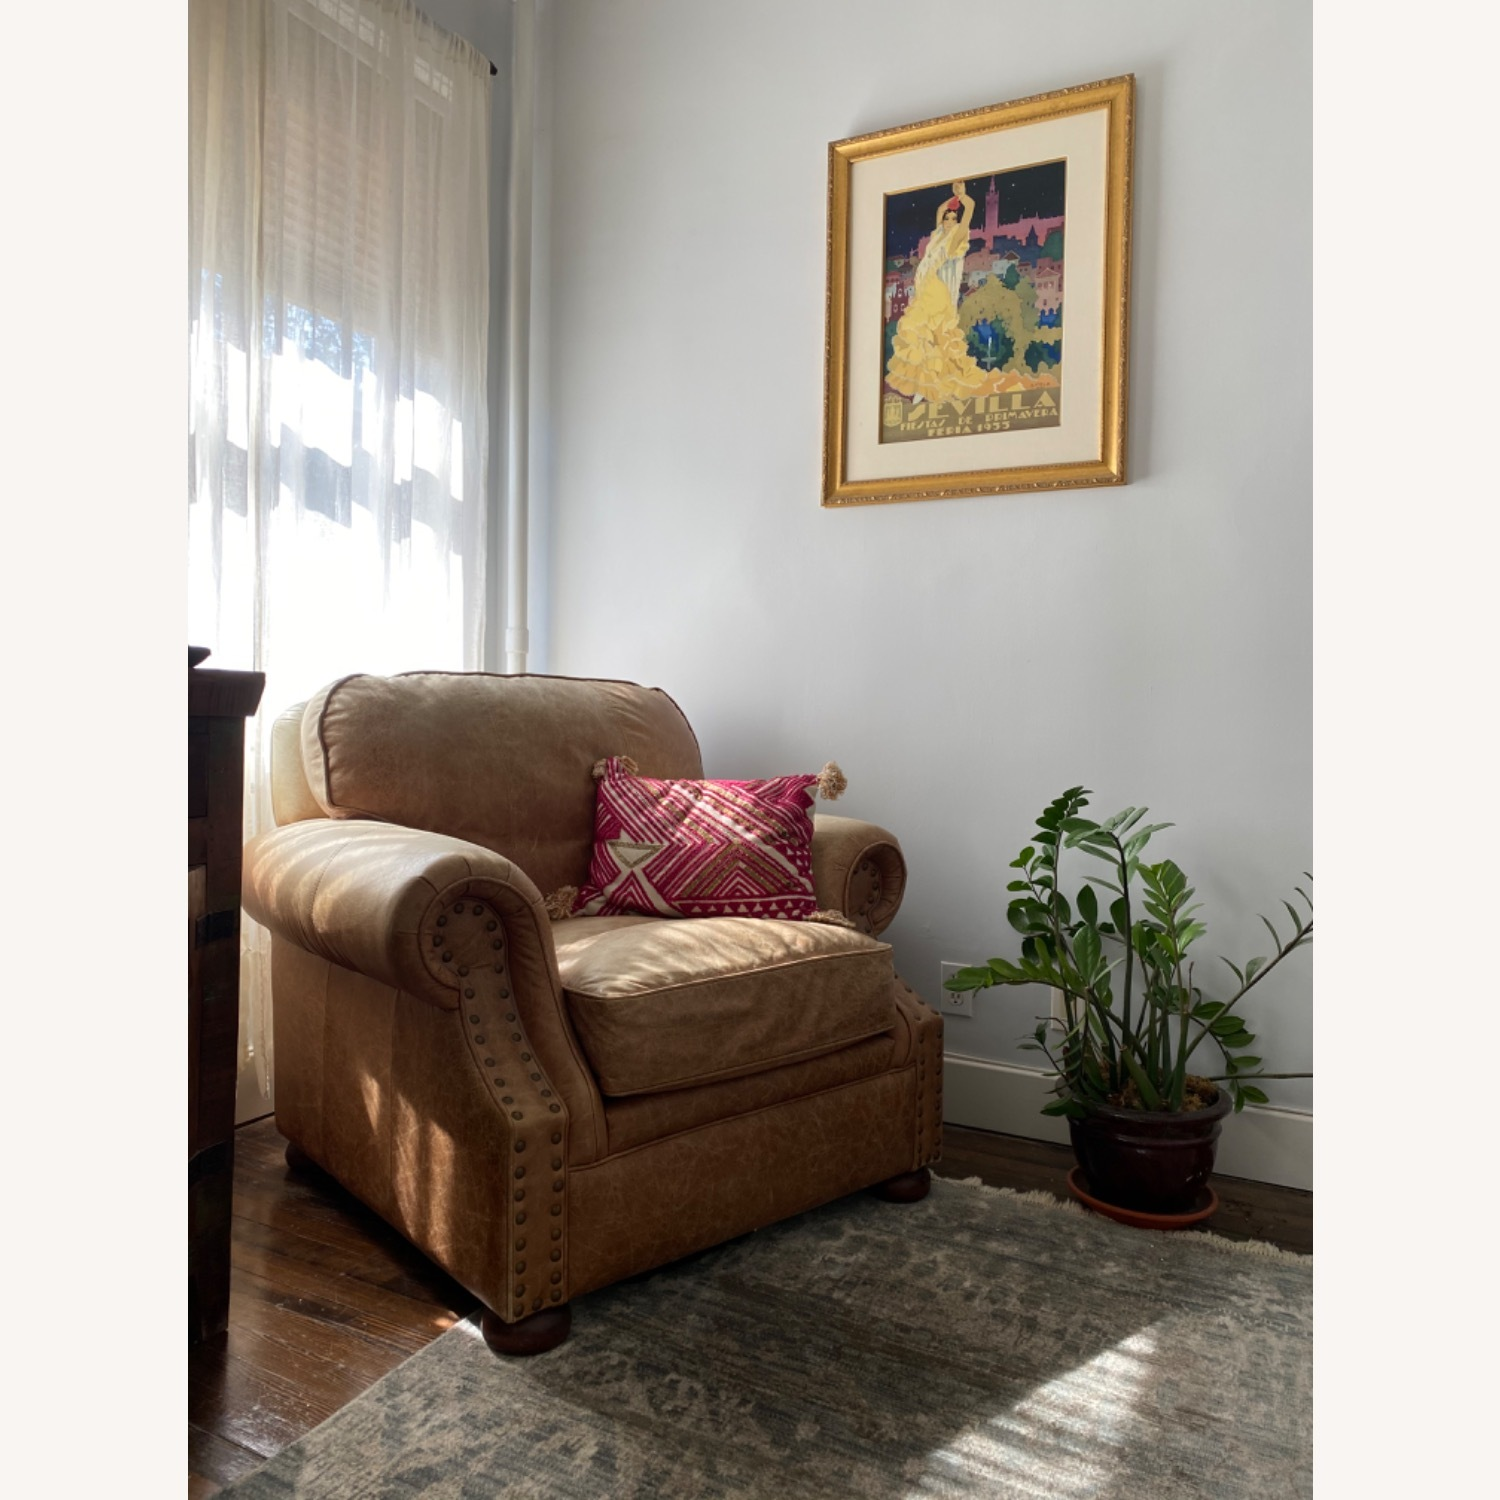 Ethan Allen Cognac Leather Chair and Ottoman - image-3